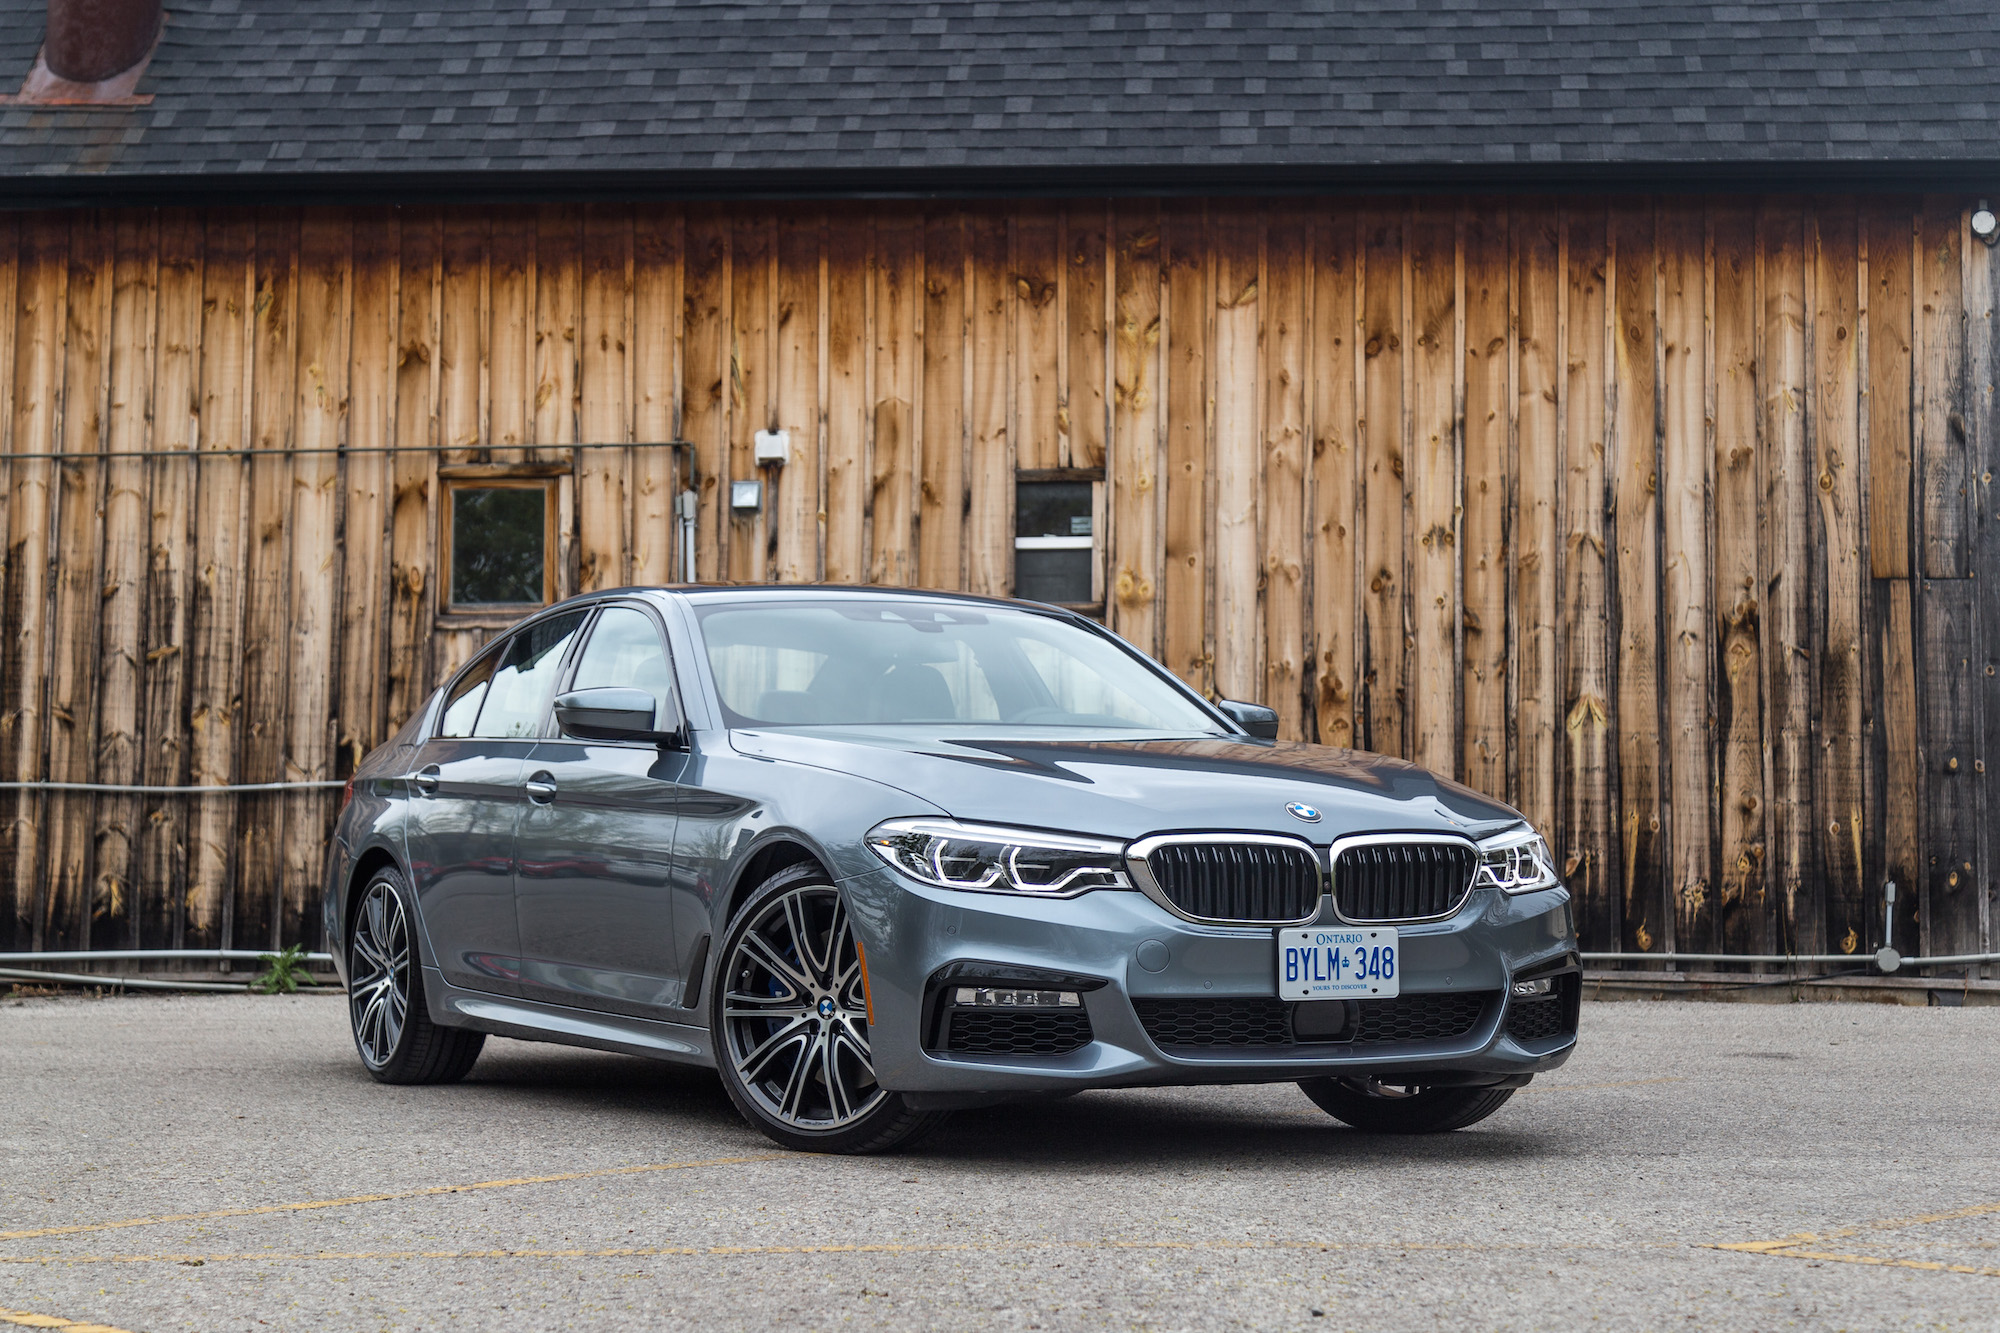 Used Bmw 5 Series Review >> Review: 2017 BMW 540i xDrive | Canadian Auto Review